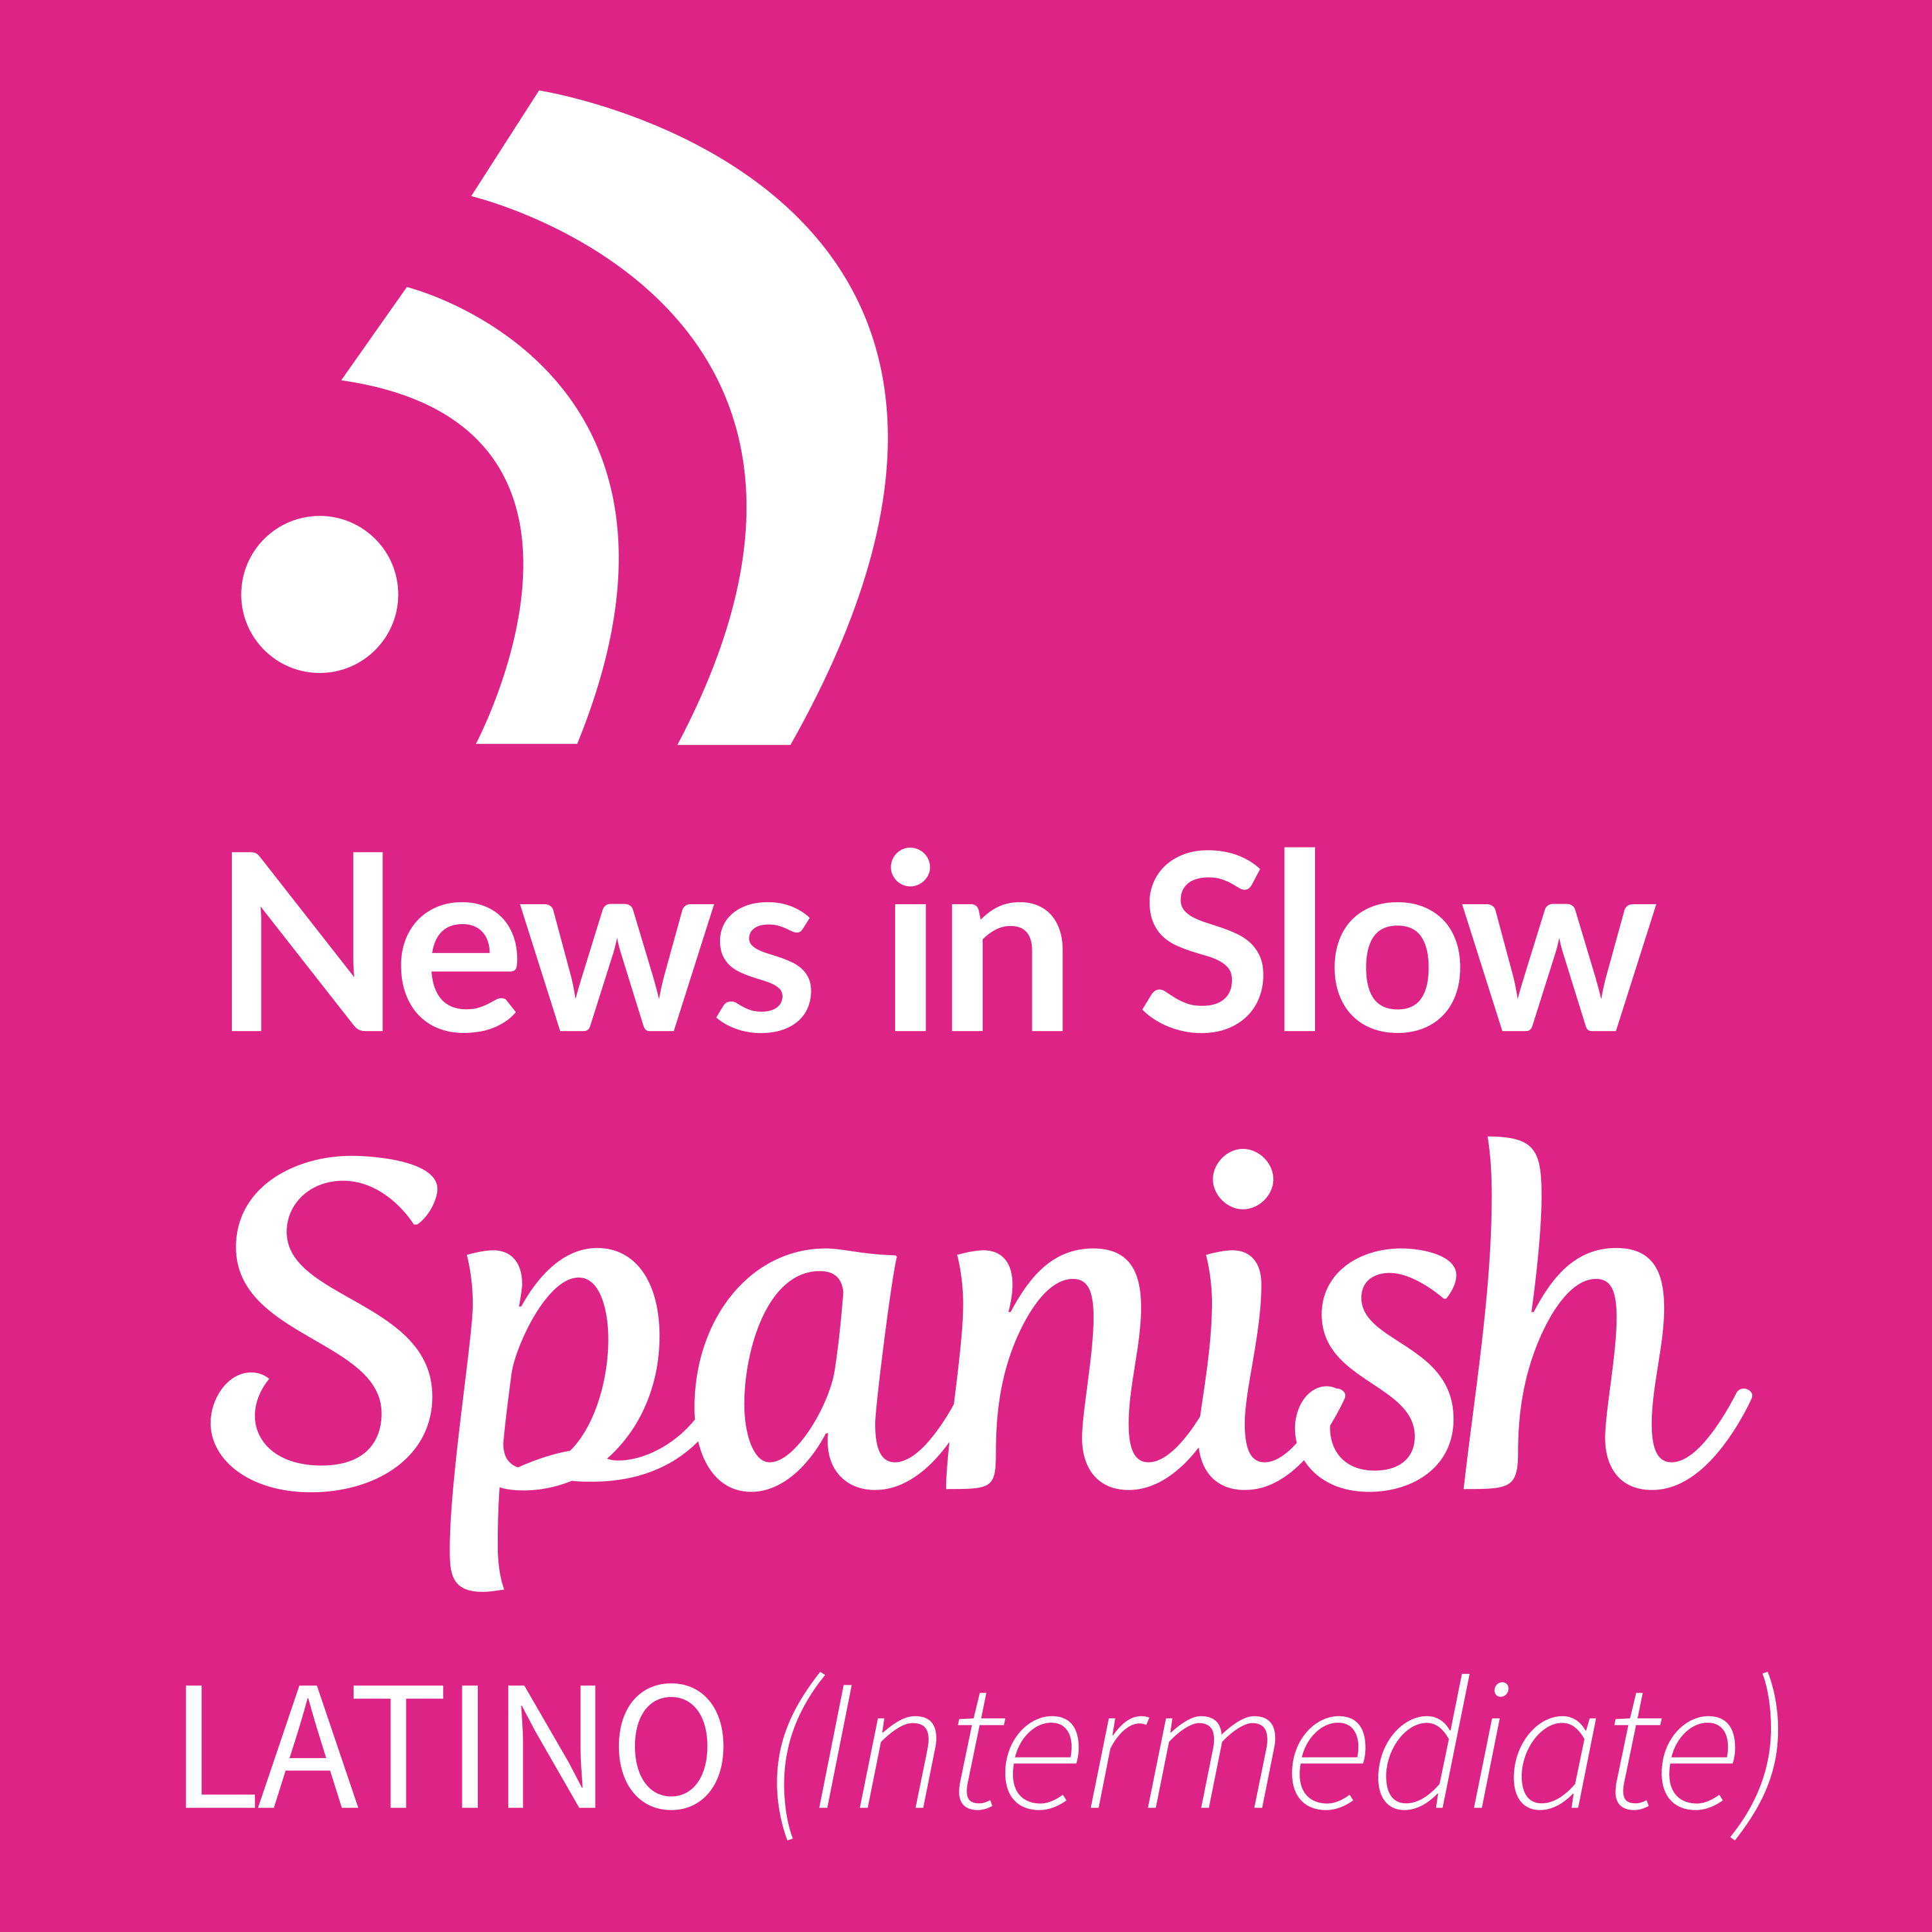 News in Slow Spanish Latino - # 188 - Spanish news, grammar and idiomatic expressions